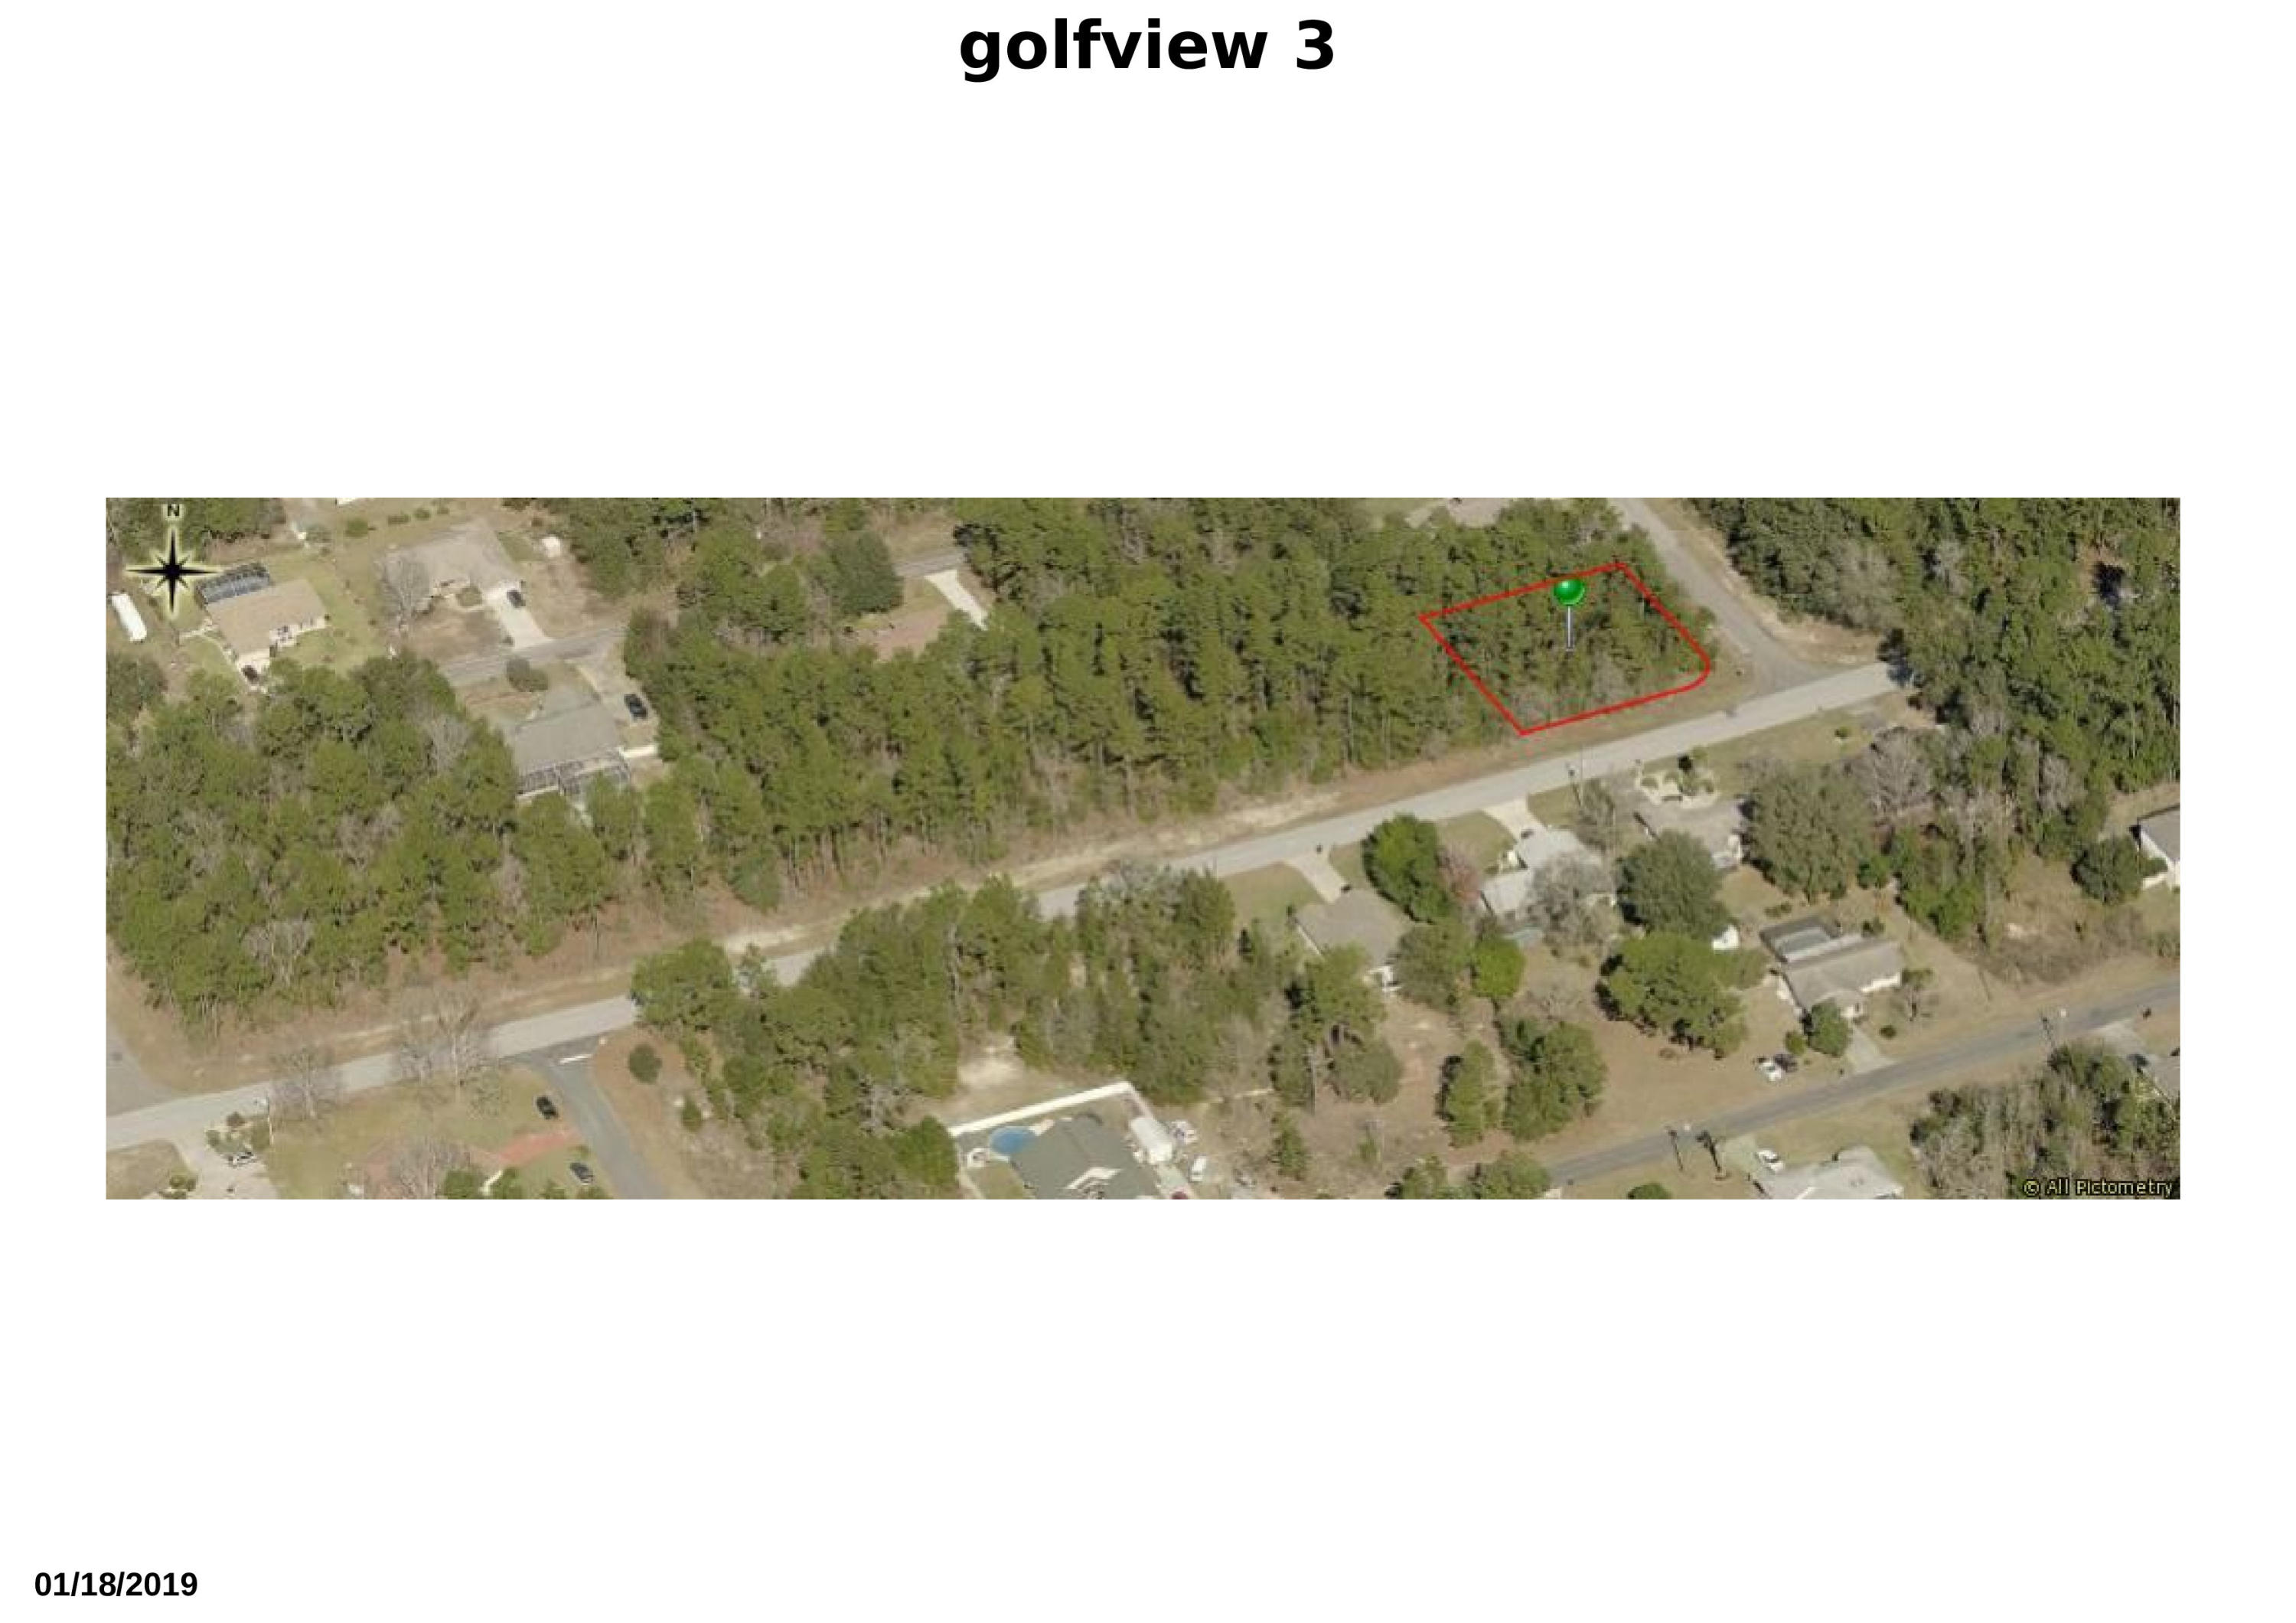 golfview 3